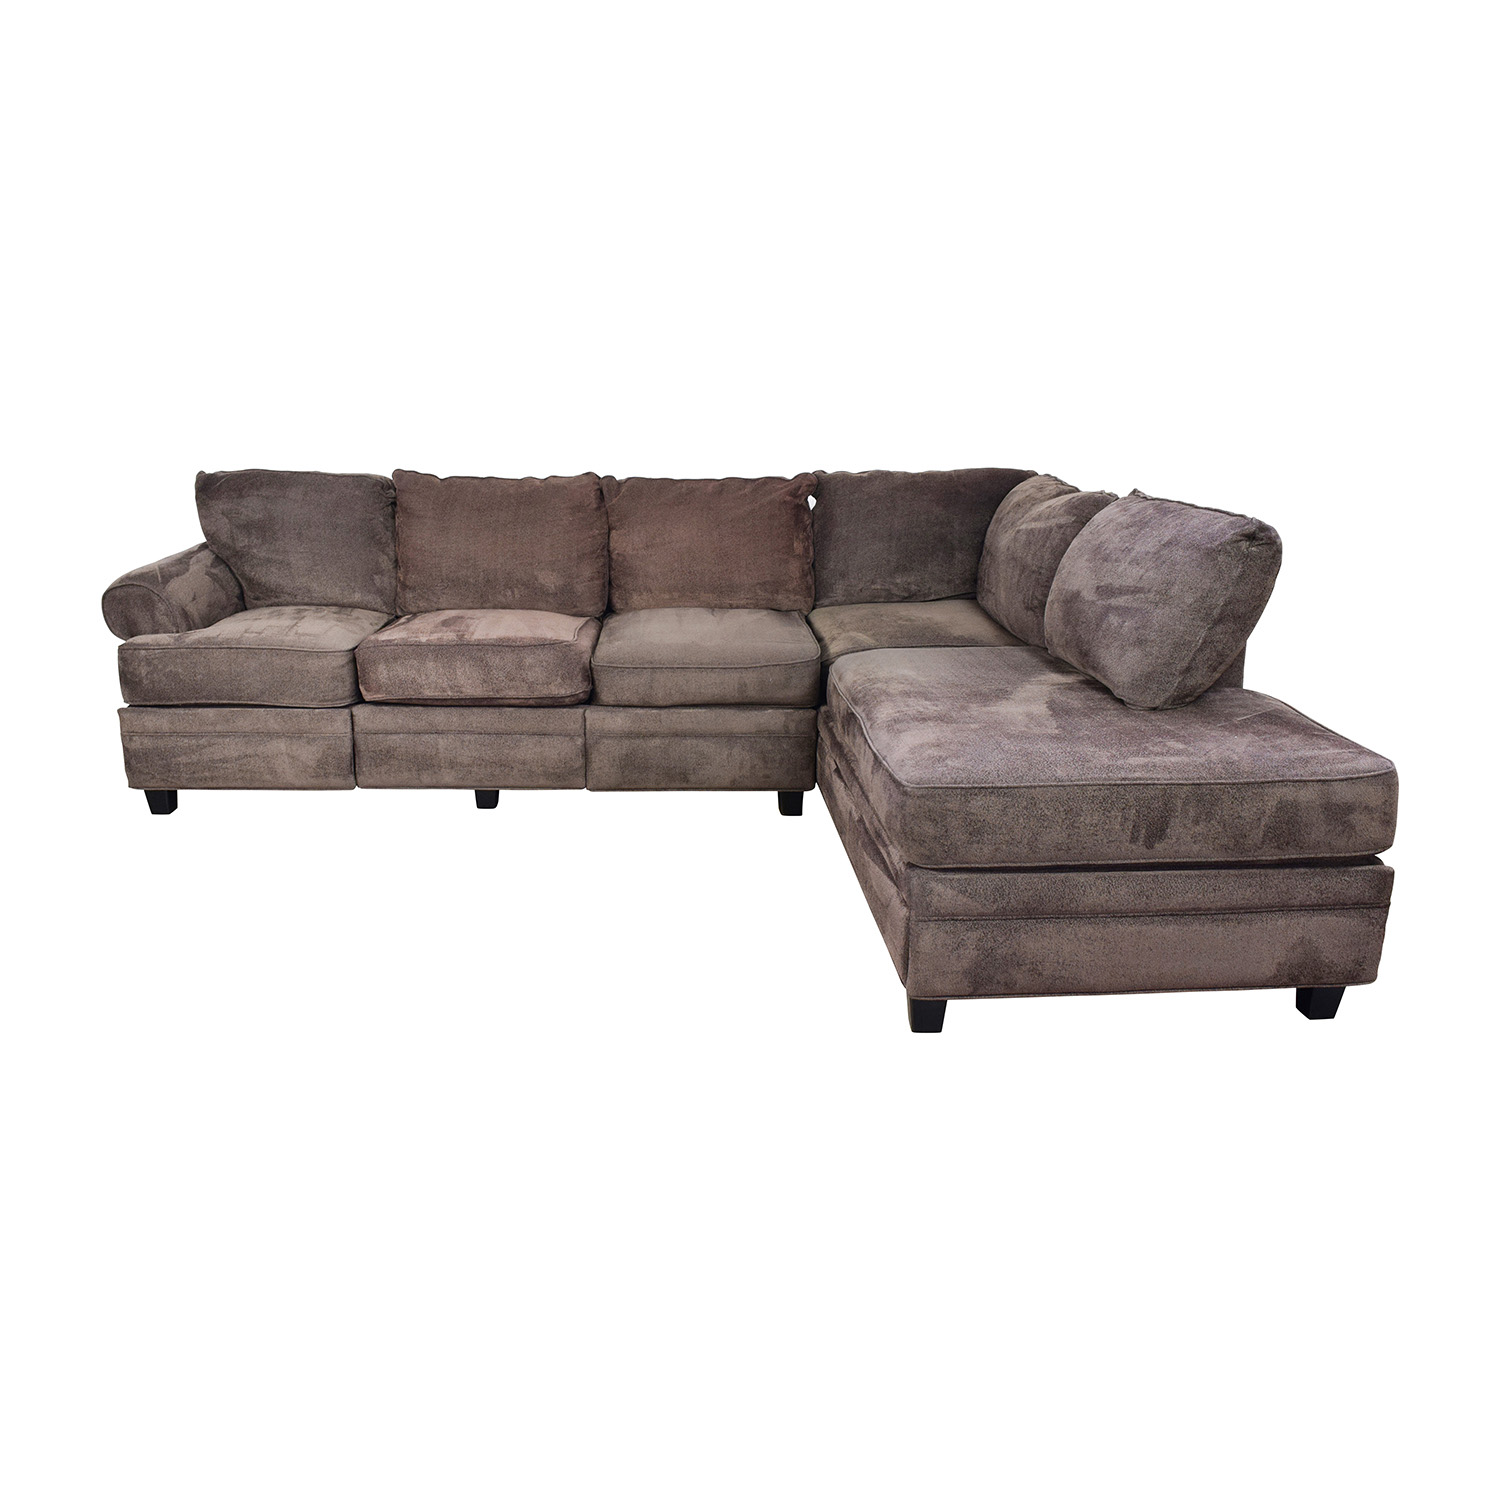 Bobs Furniture Bobs Furniture Brown Sectional with Storage nj